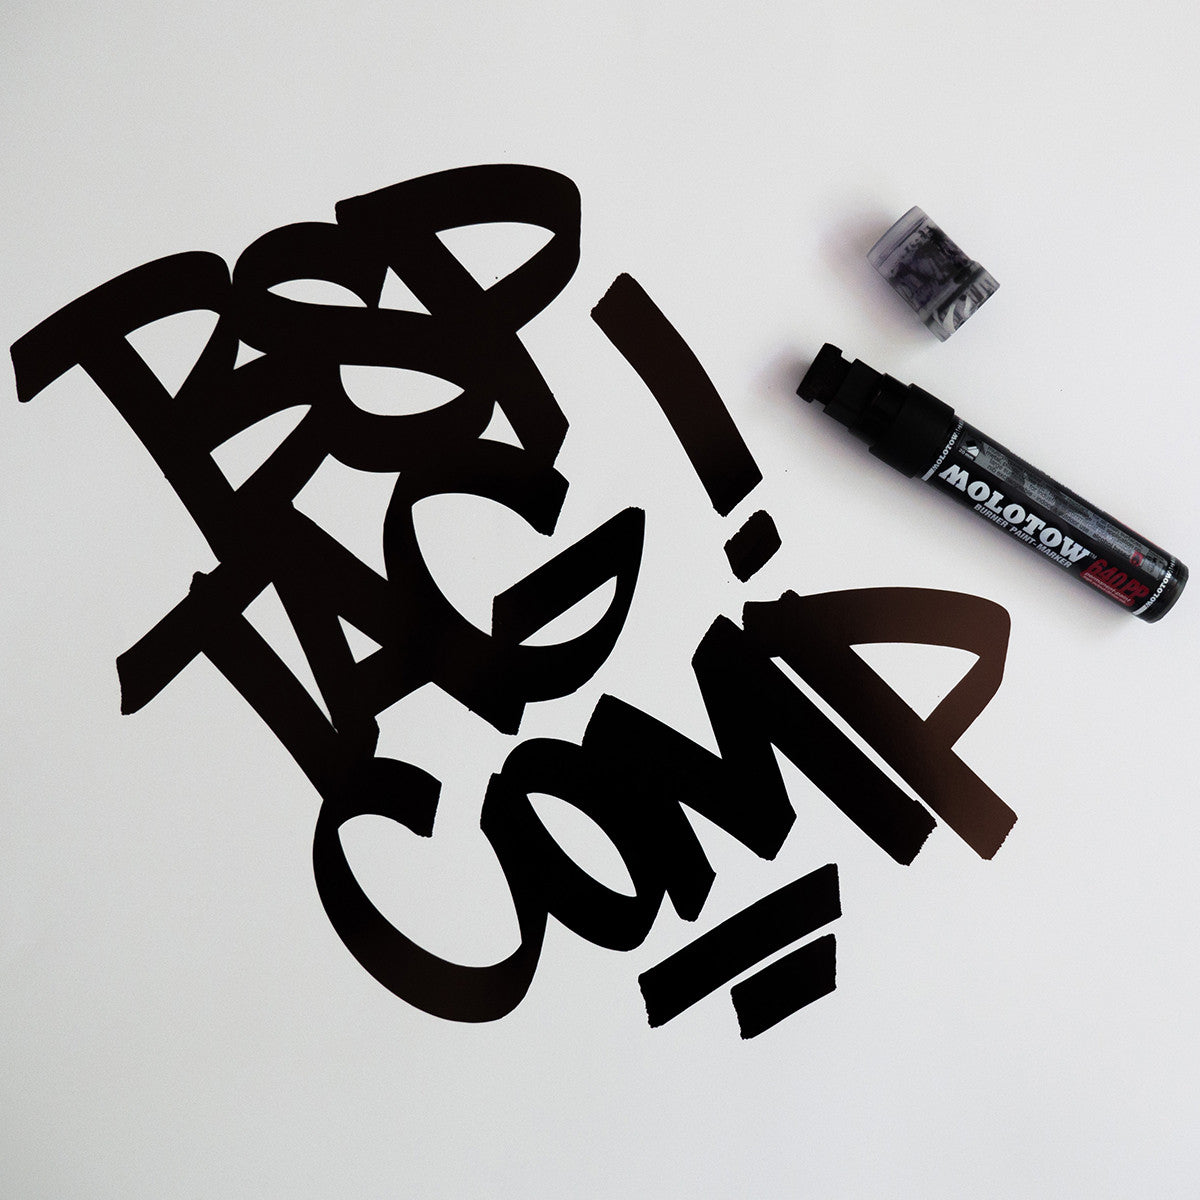 BSP Tag Competition